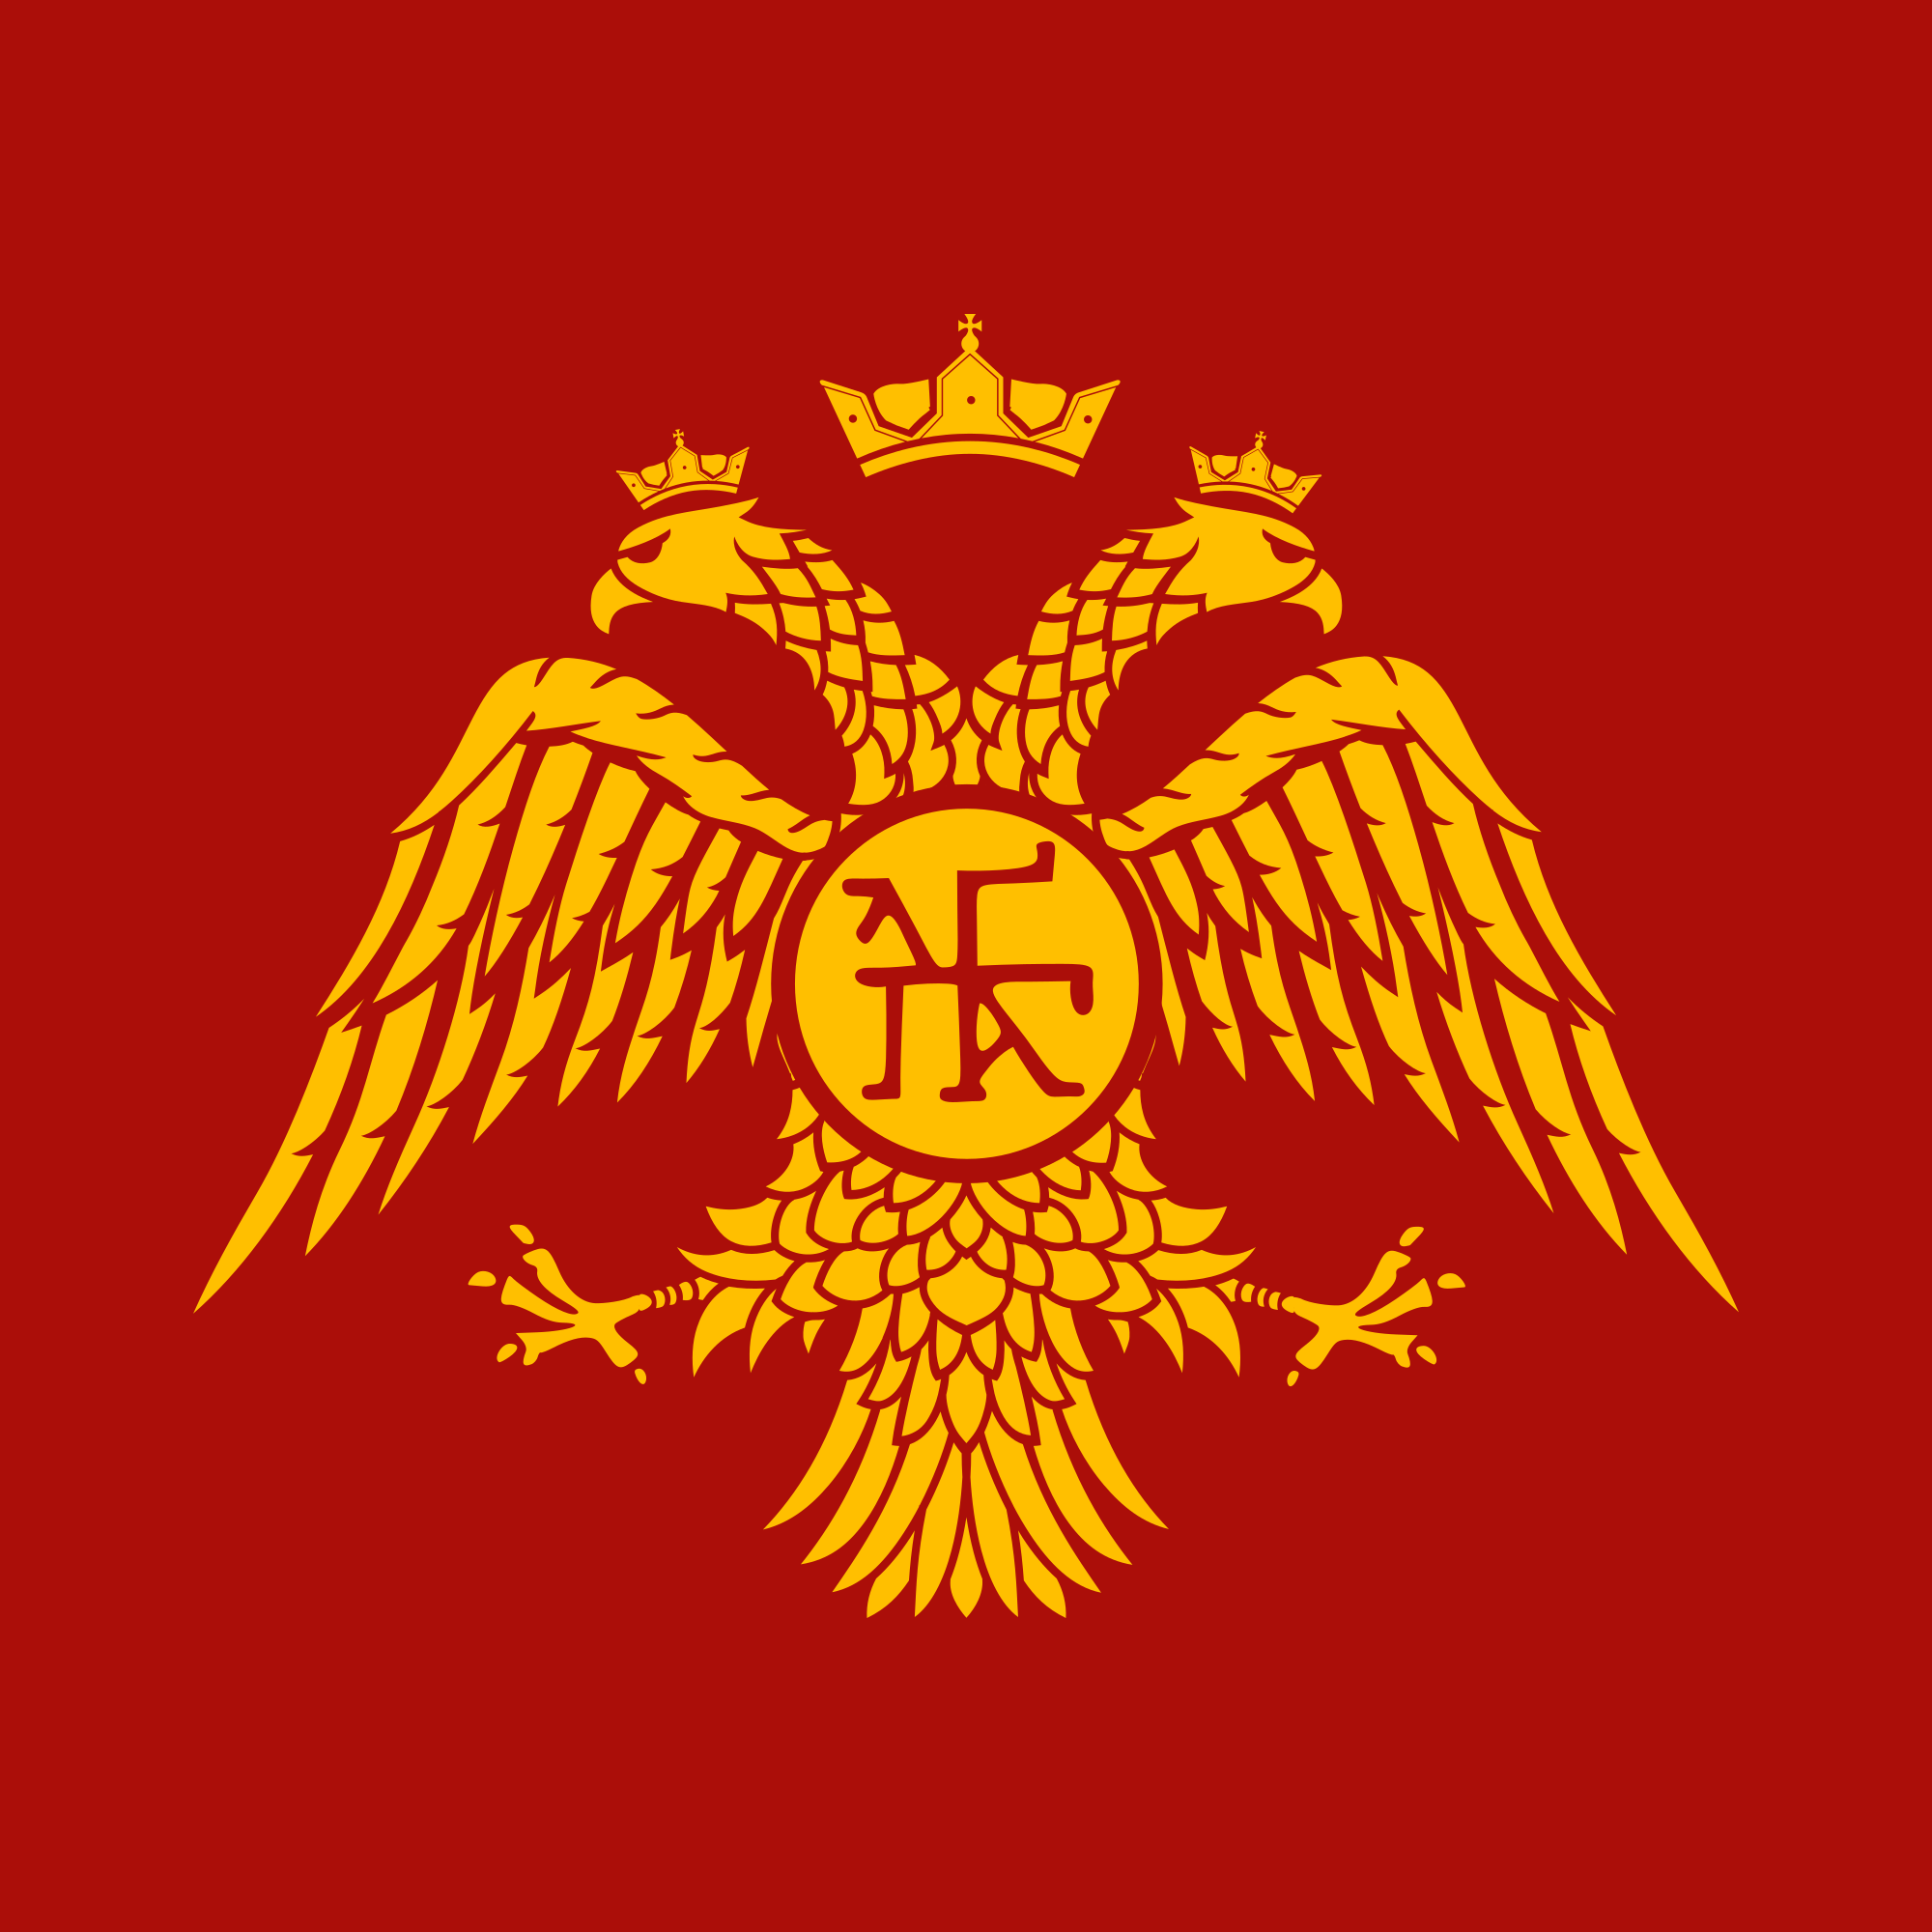 Standard of the Palaiogoi